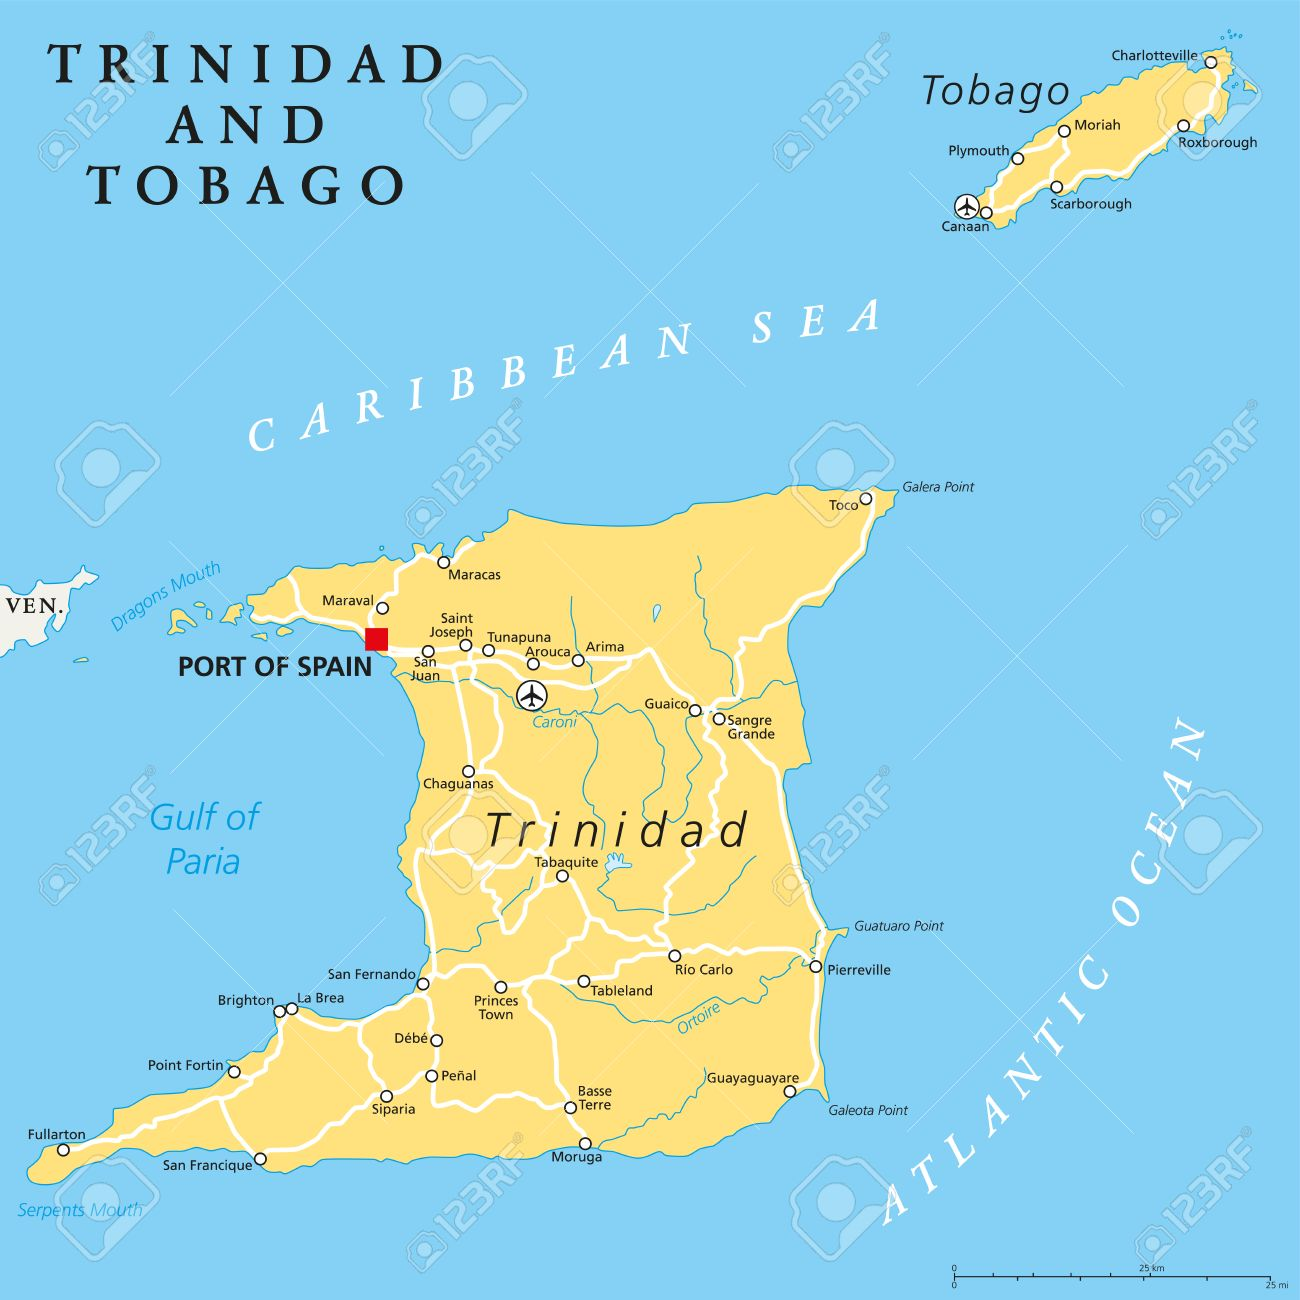 Map Of Spain And Surrounding Islands.Trinidad And Tobago Political Map With Capital Port Of Spain